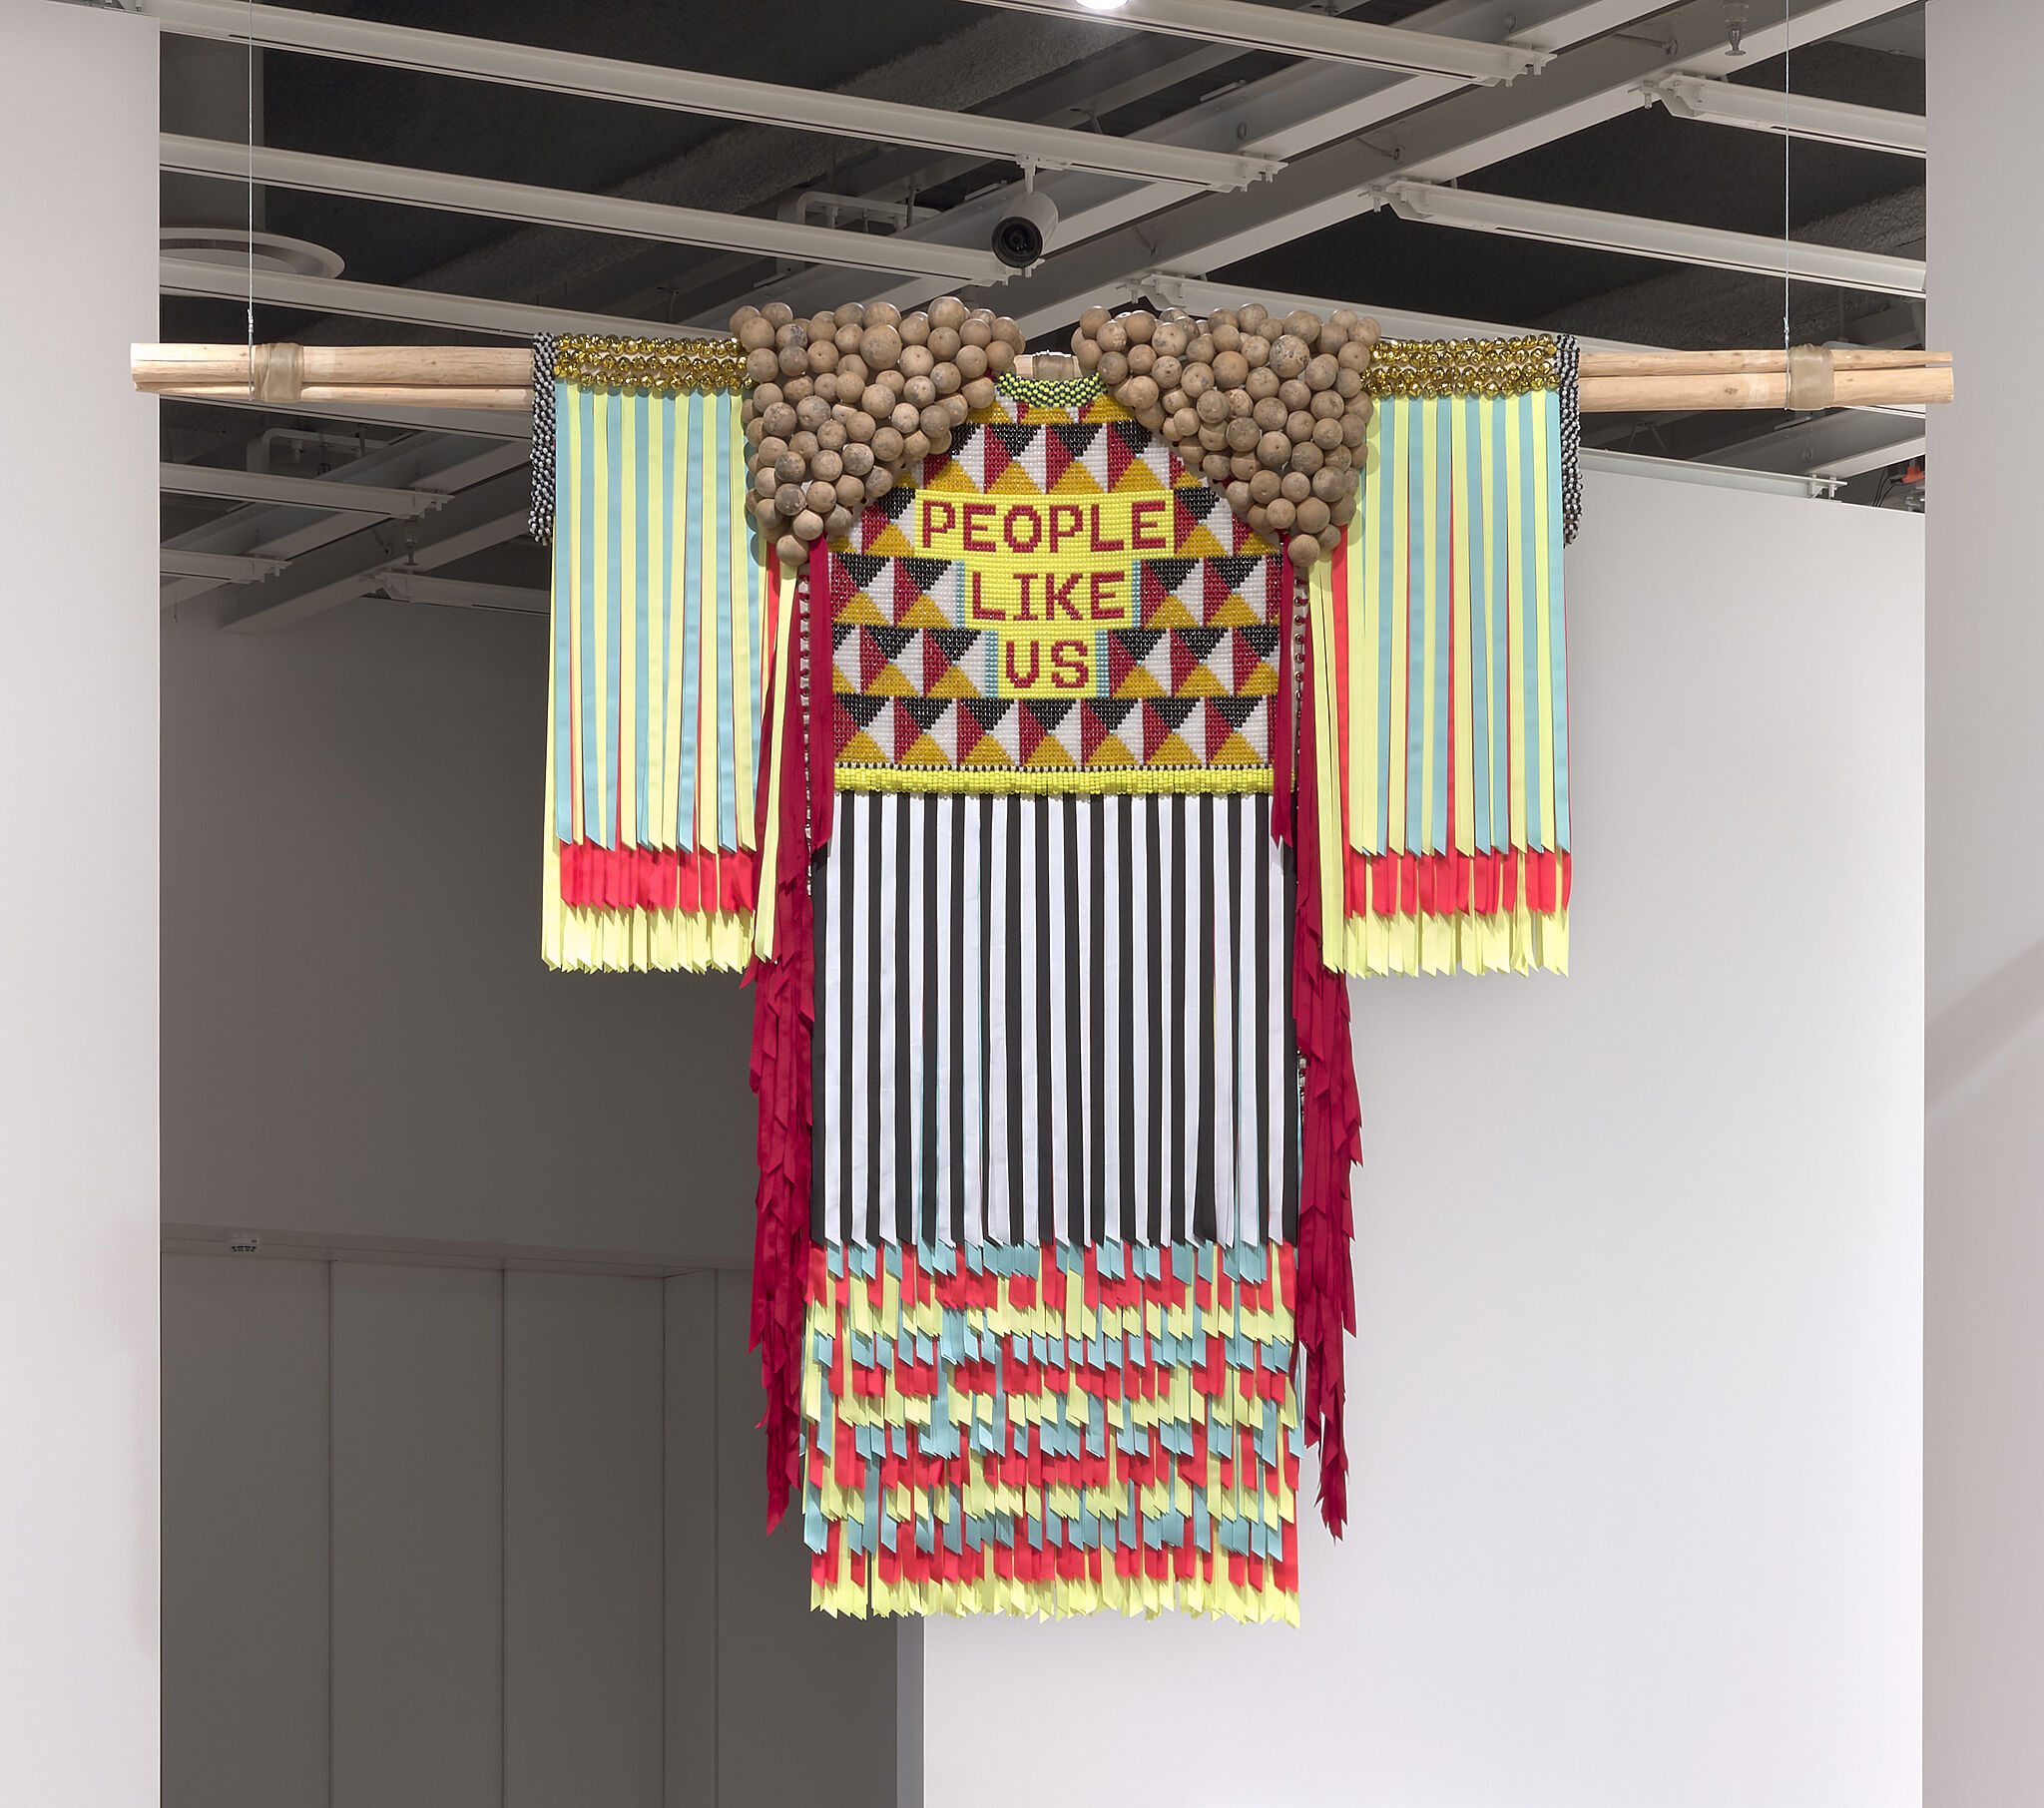 A photograph of a textile sculpture hanging in a gallery.